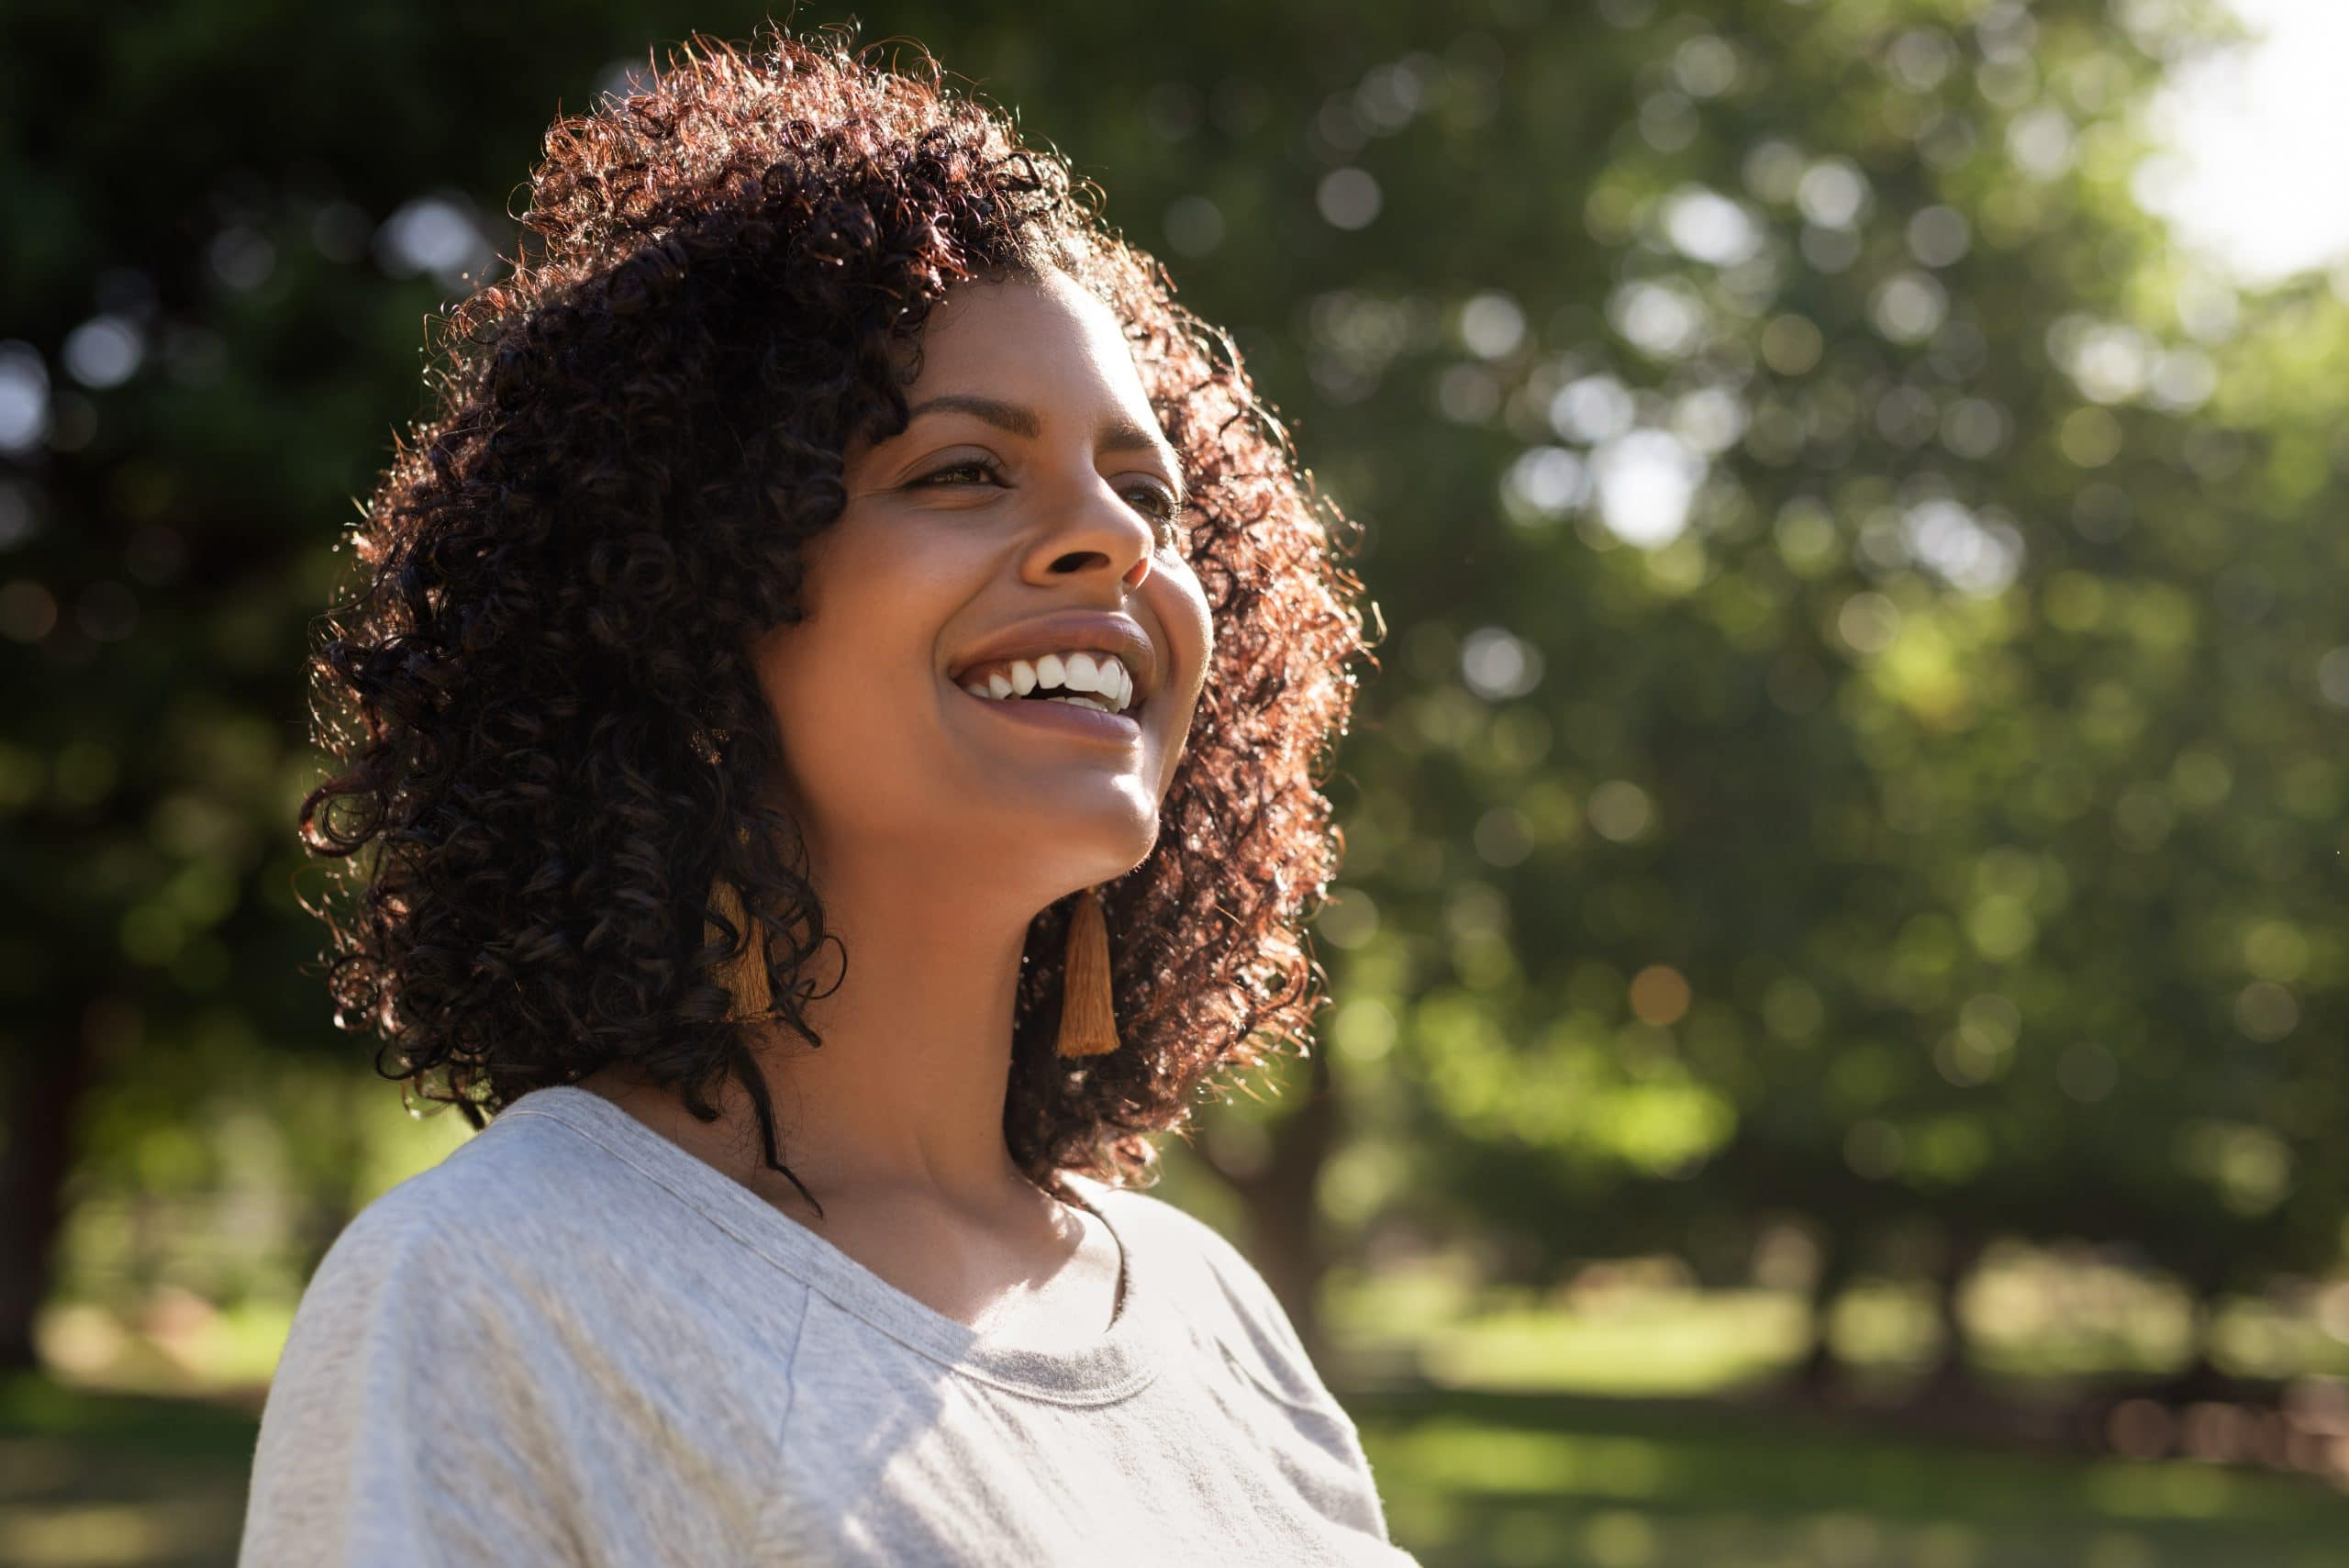 Young woman with curly hair smiling while standing outside in a park on a sunny summer afternoon